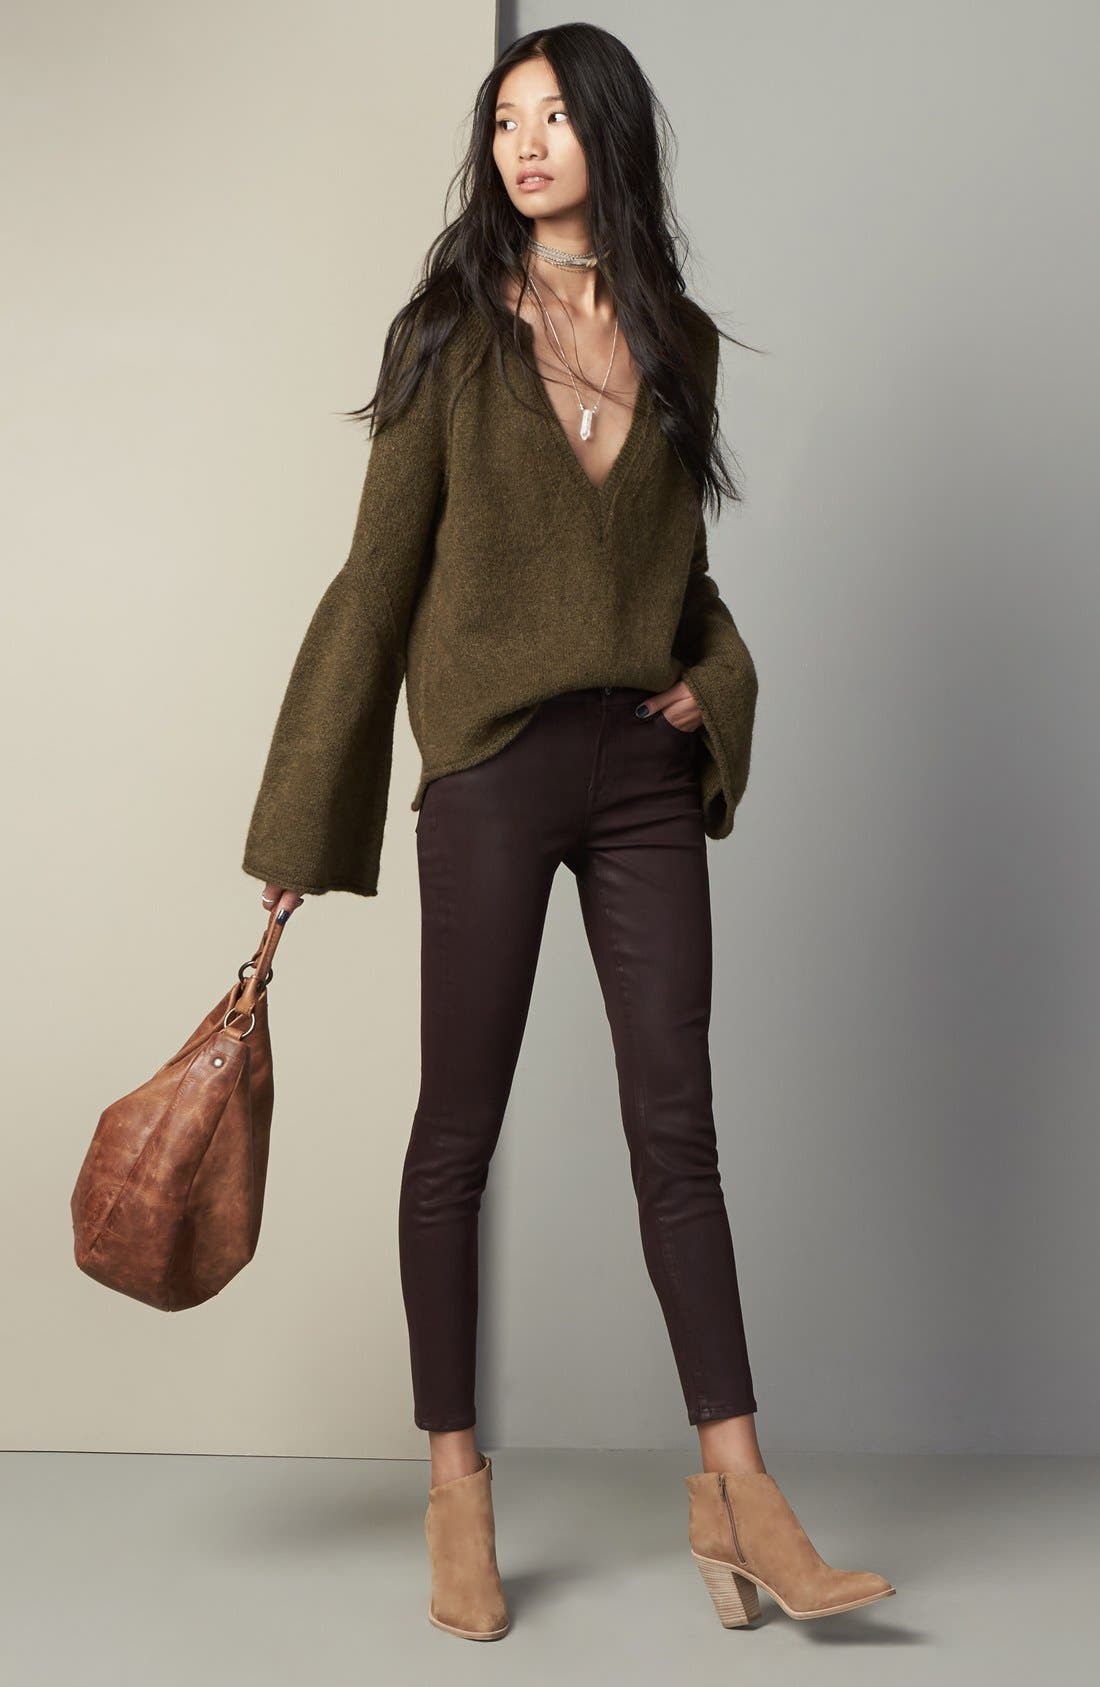 Free People Sweater & 7 For All Mankind® Jeans Outfit with Accessories